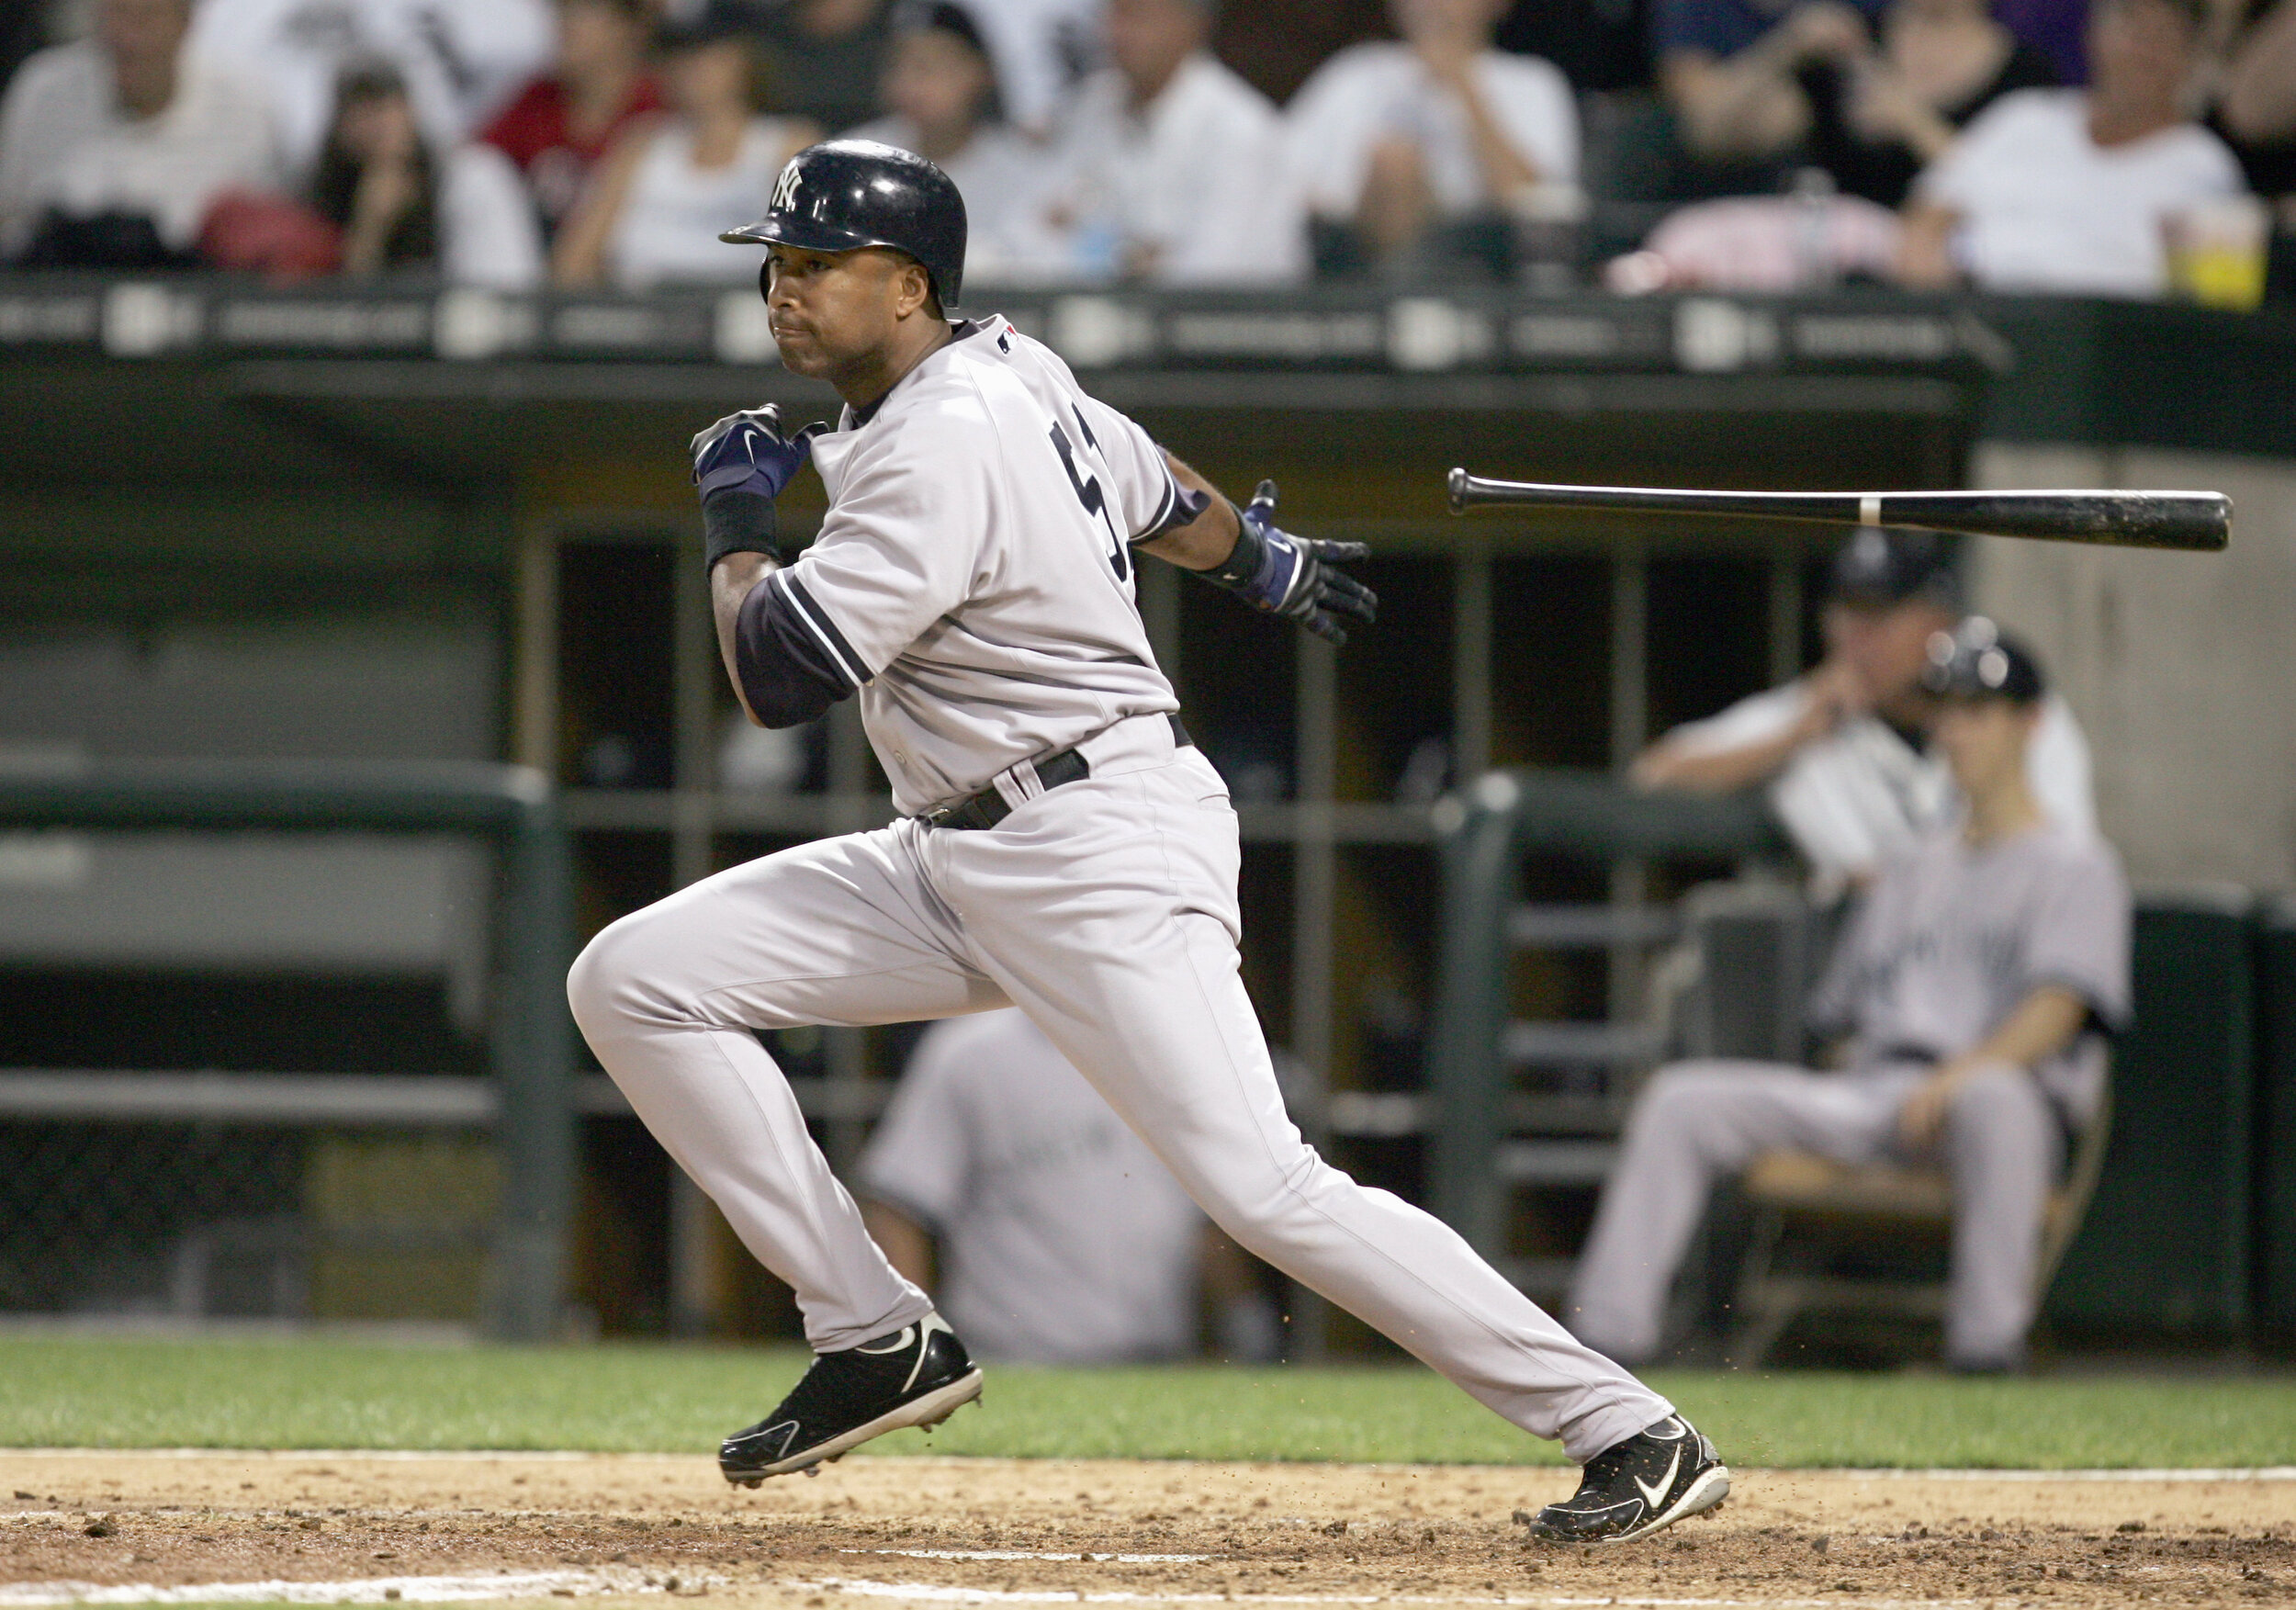 bernie williams2.jpg